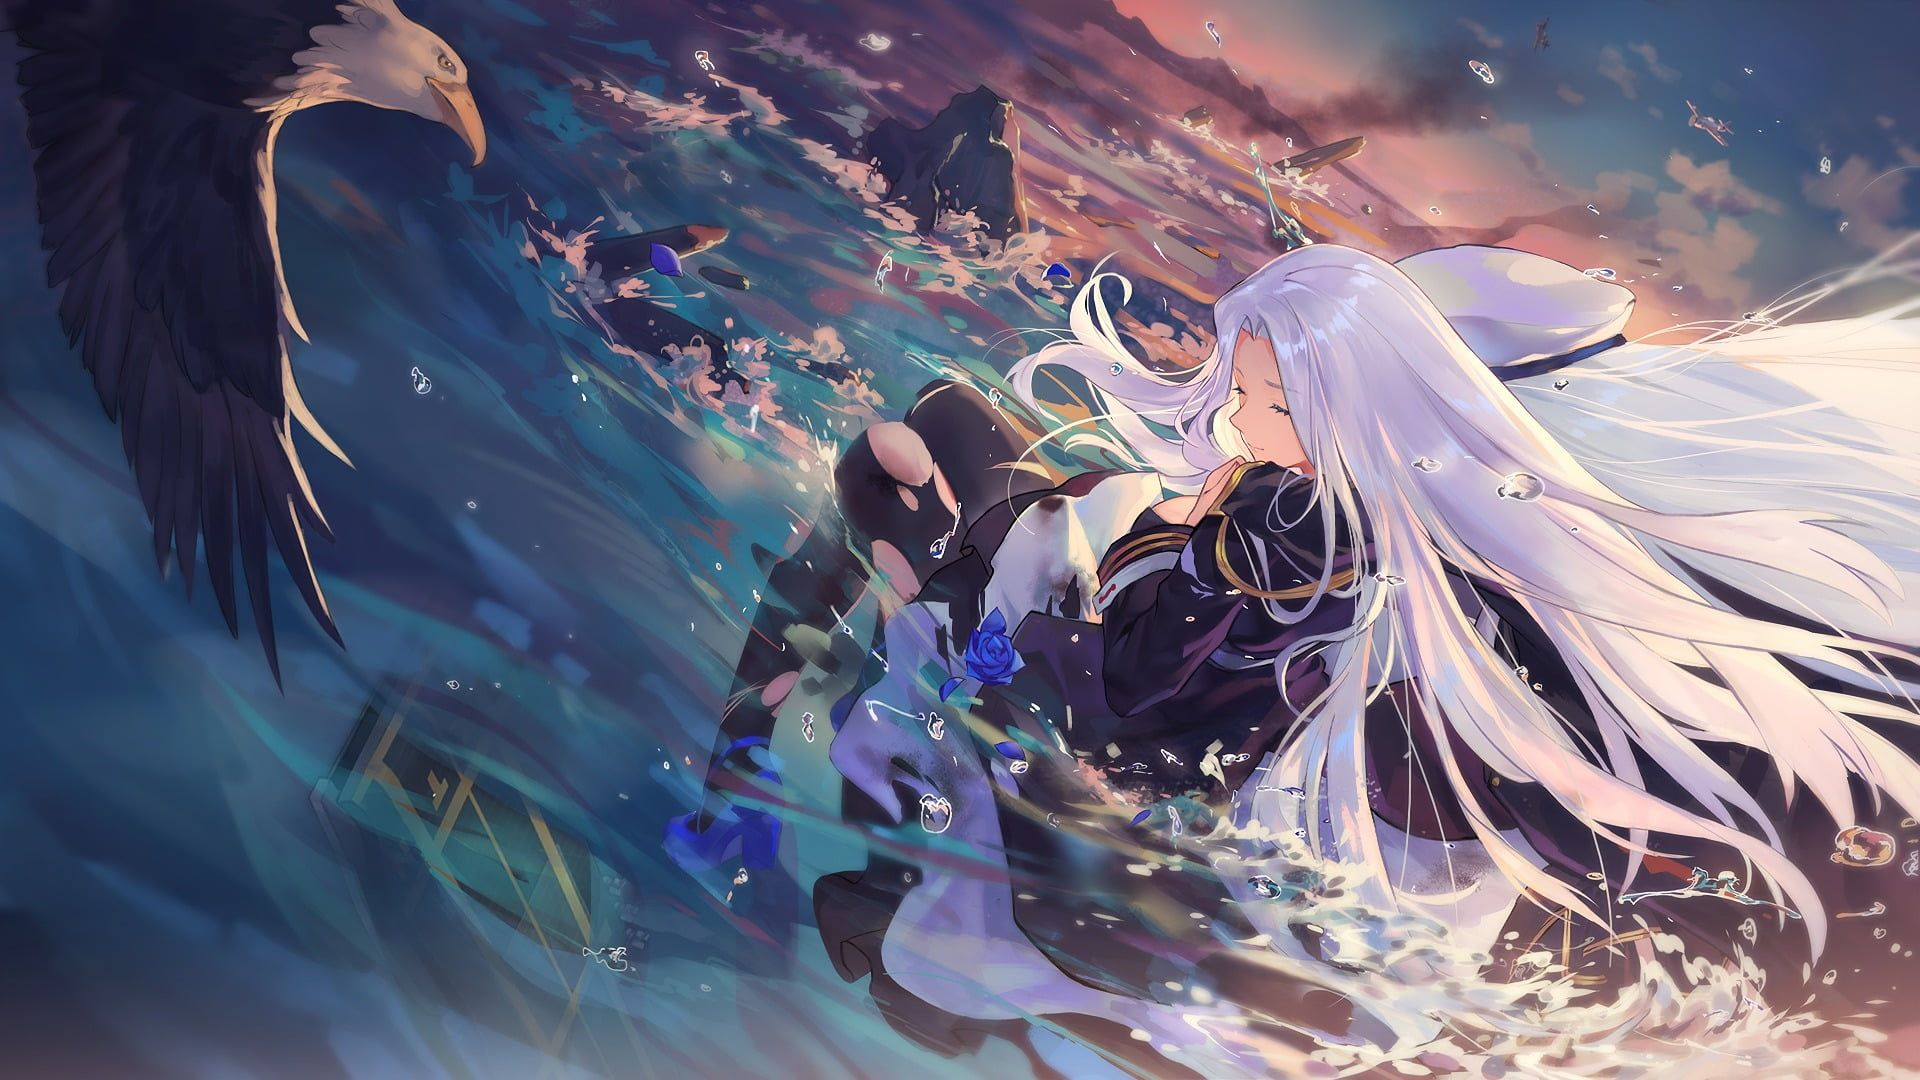 Female With White Haired Anime Character Anime Girls Azur Lane